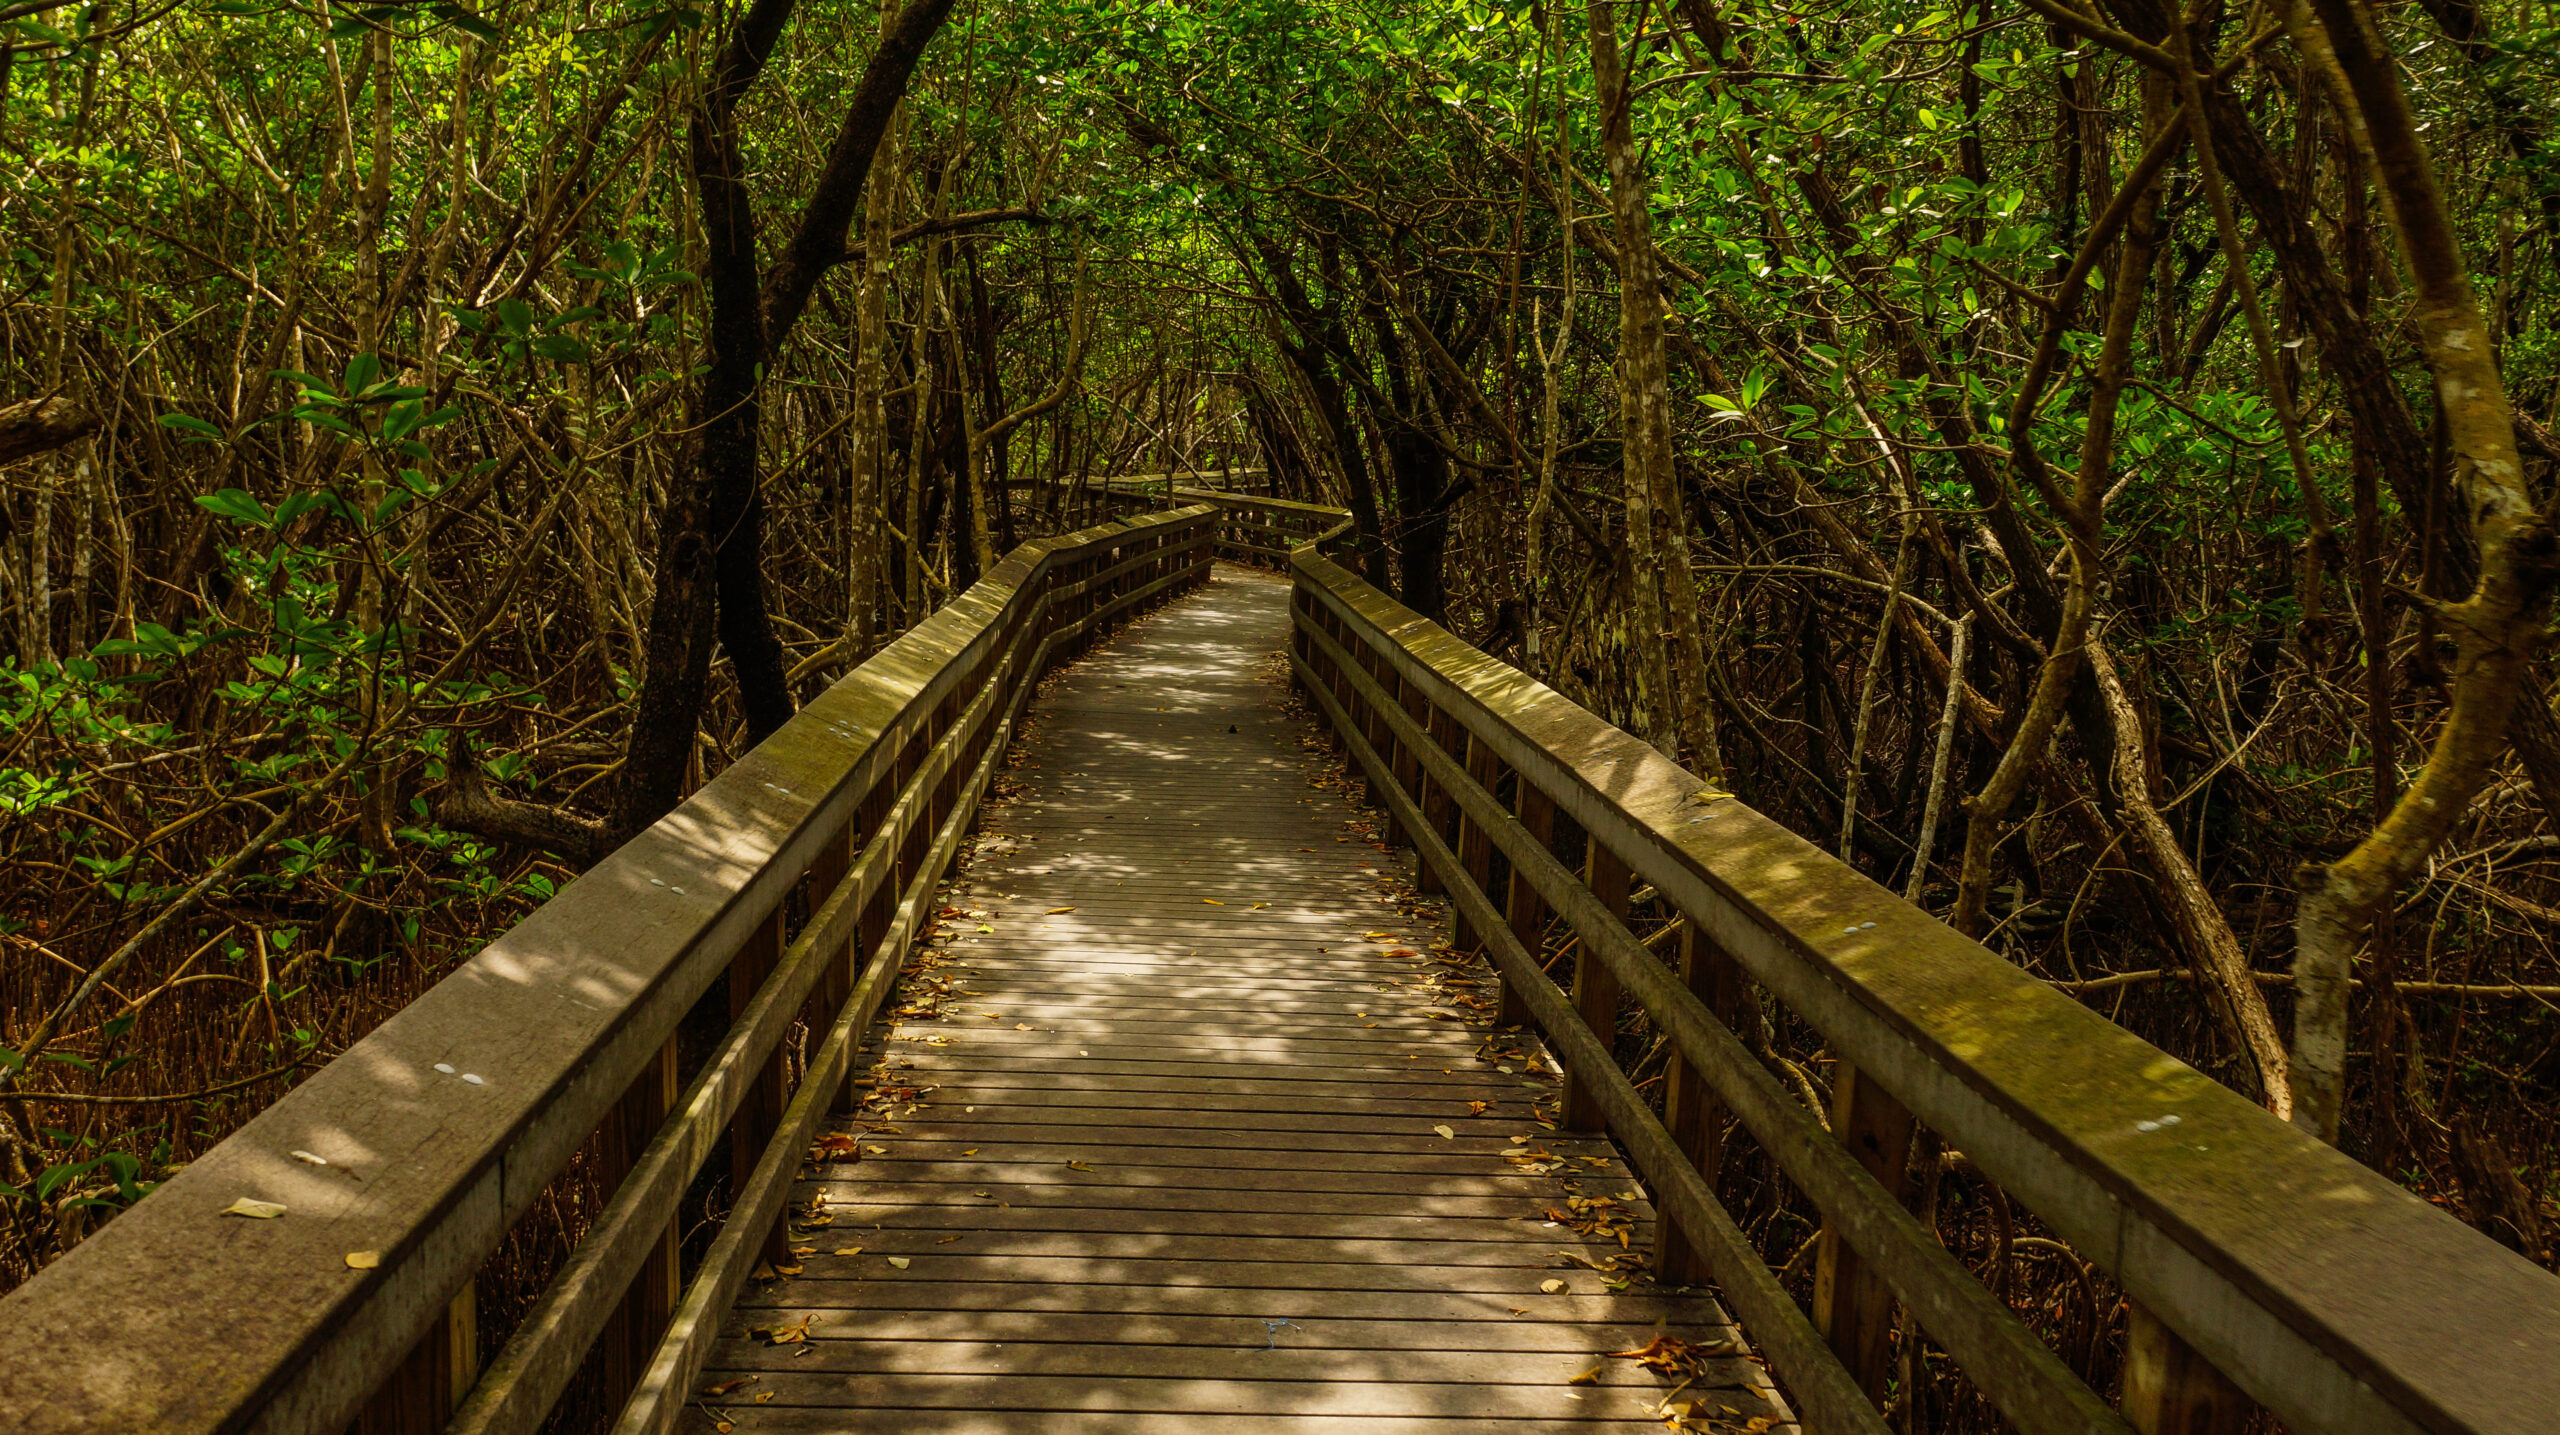 West Lake Trail in Everglades National Park in Florida, United States